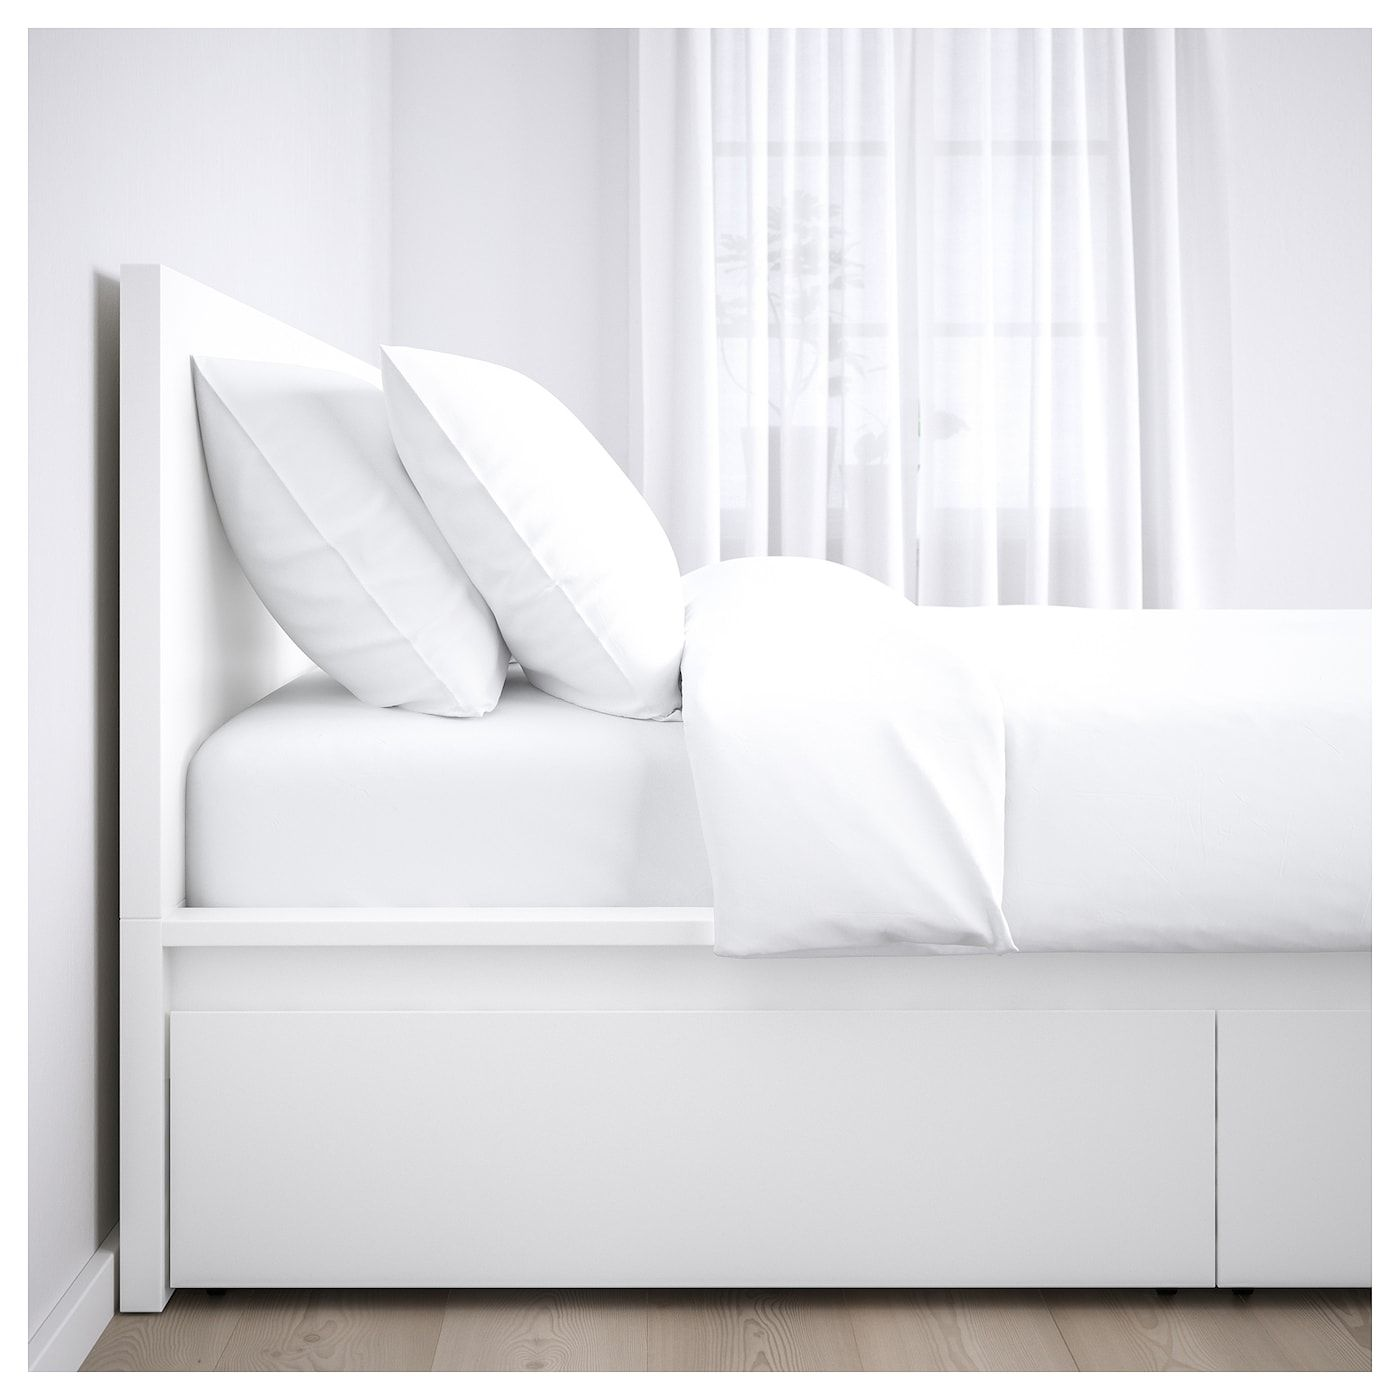 Malm High Bed Frame 2 Storage Boxes White Luroy Queen Ikea High Bed Frame White Bed Frame Bed Frame With Storage